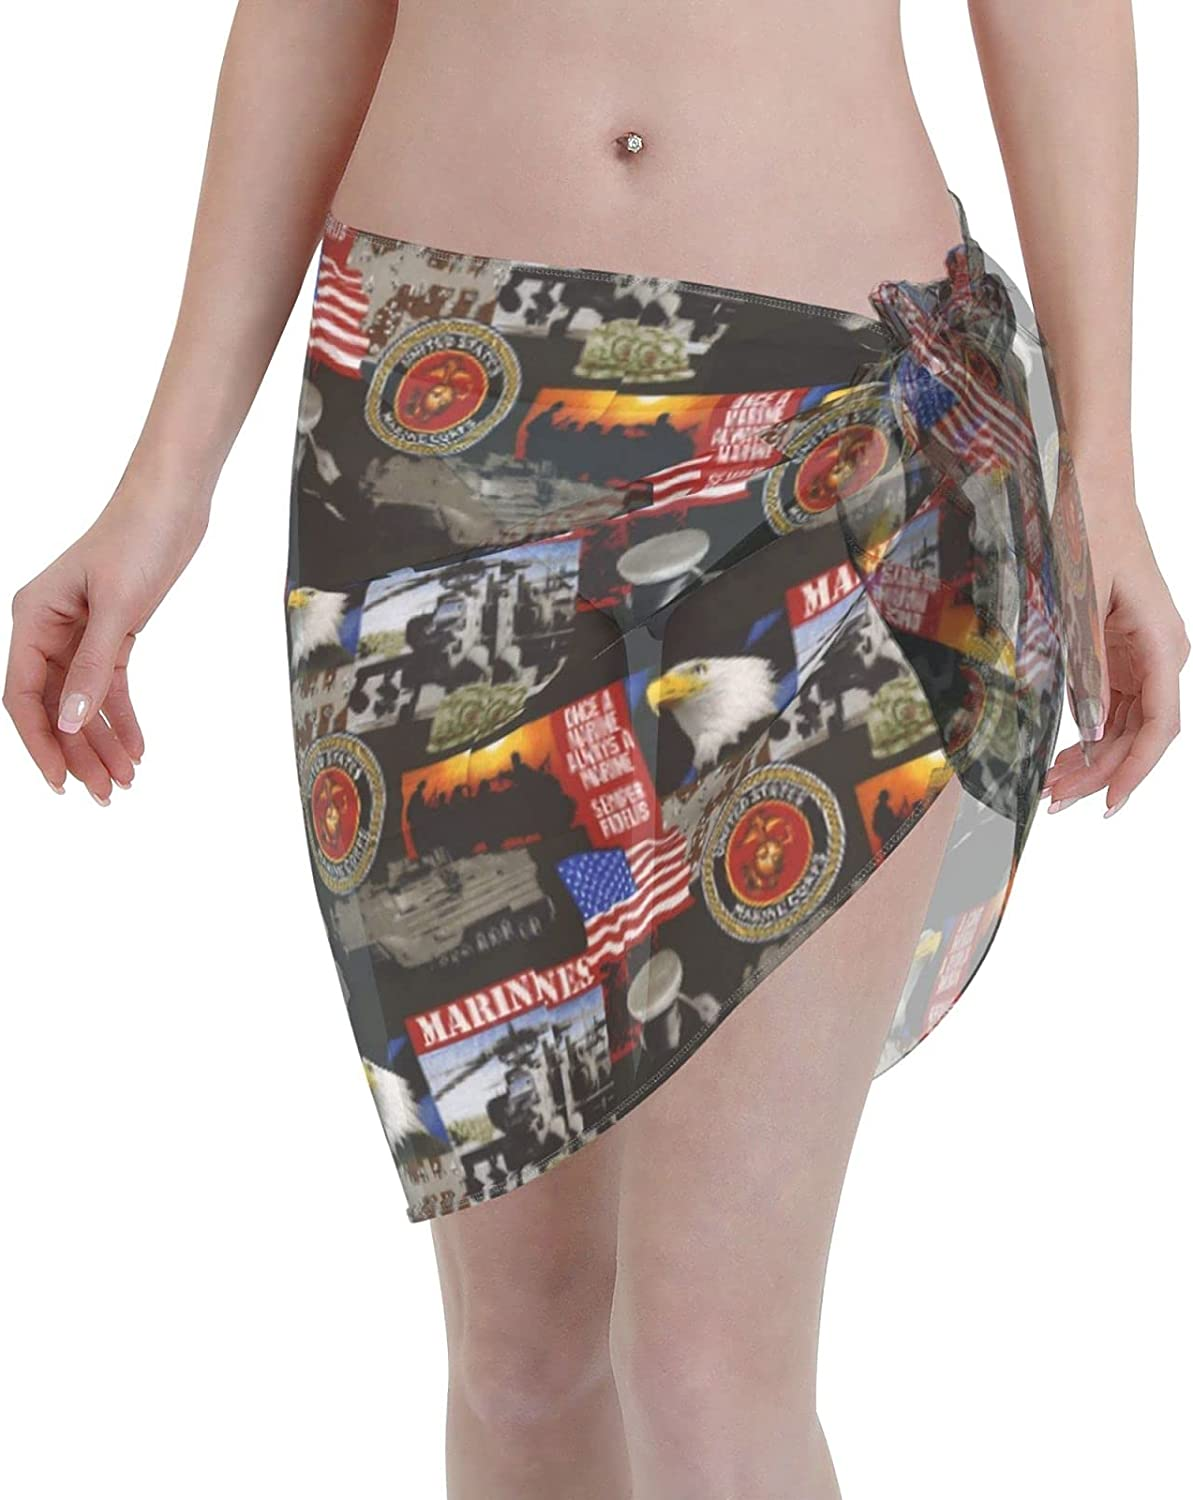 FSERSANHW USA 70% OFF Outlet Super popular specialty store Marines Military Chiffon Women Beach Short Sarong